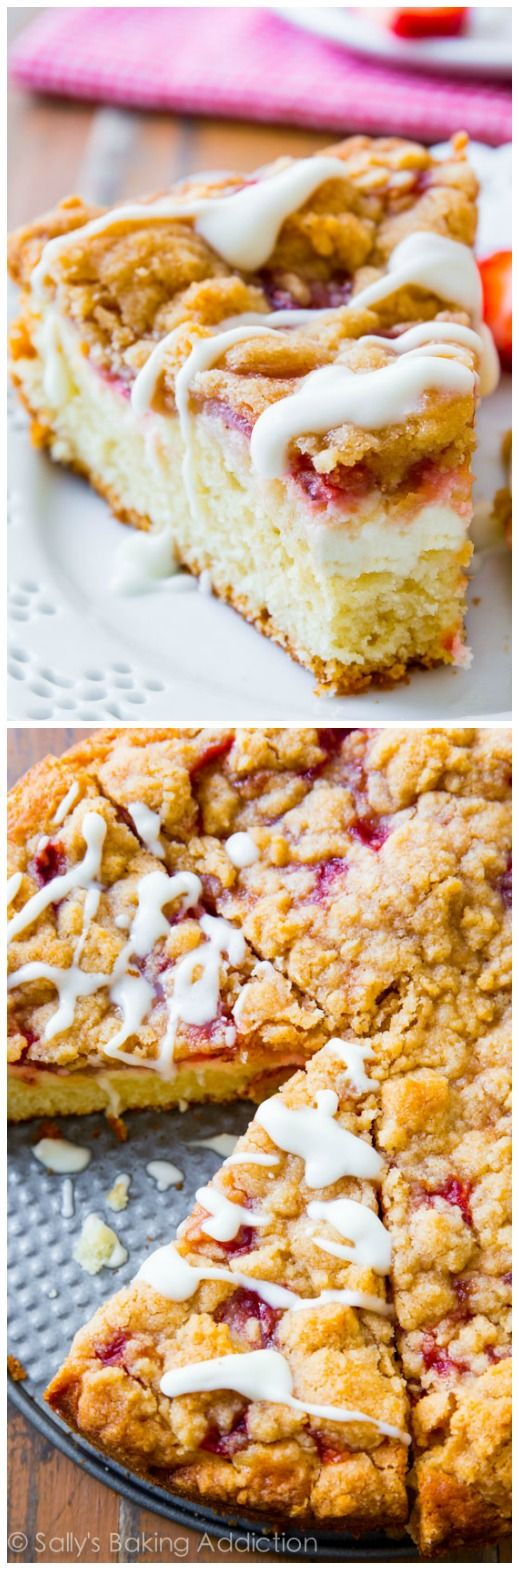 Strawberries 'n Cream Crumb Cake complete with a buttery cake, sweet strawberries, cheesecake filling, and vanilla glaze!